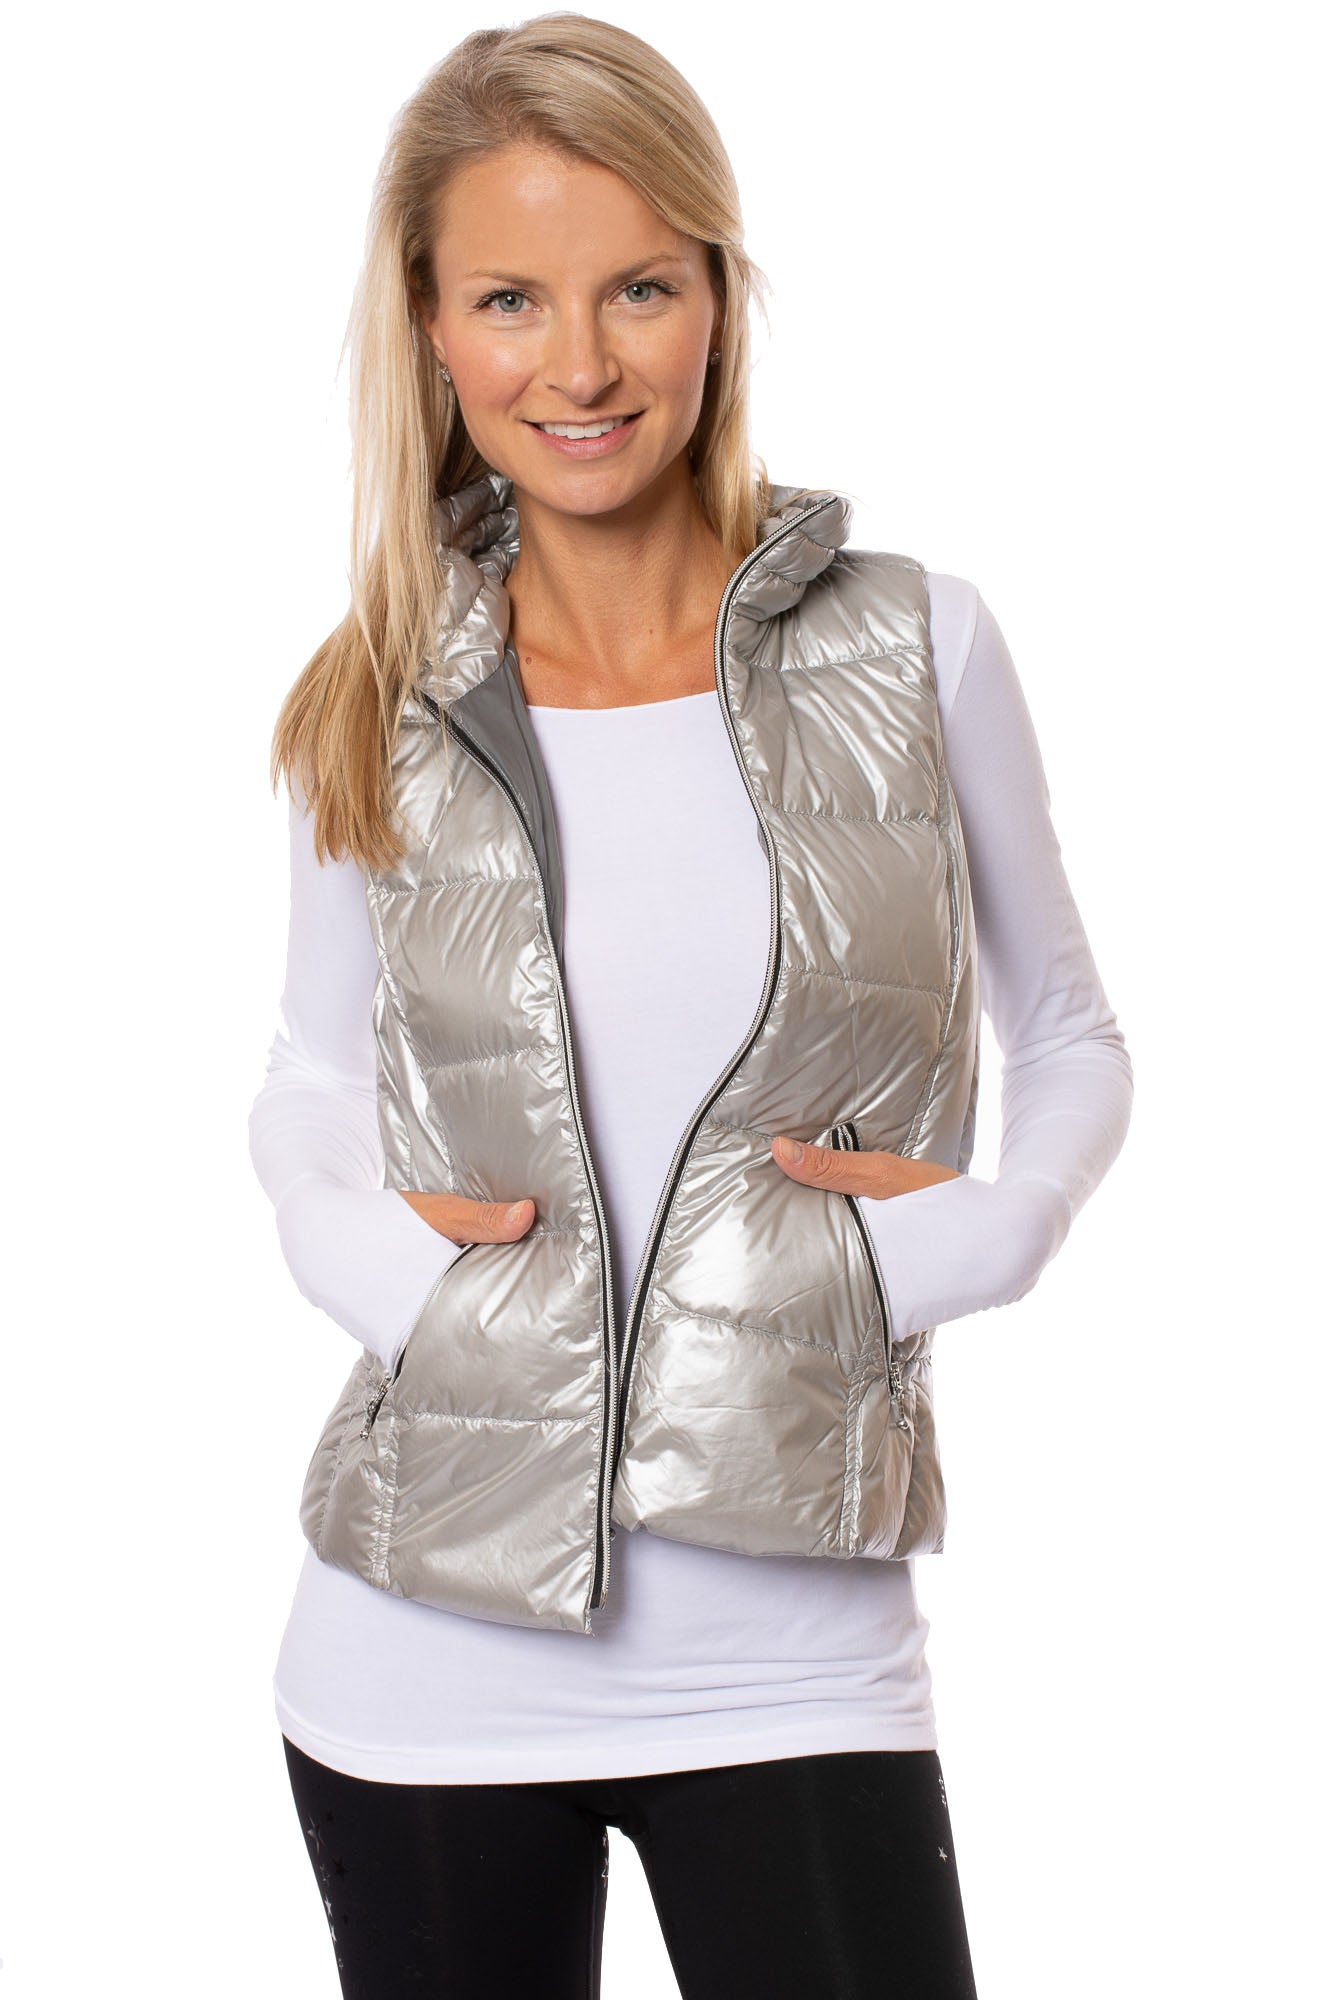 Anorak - Metallic Short Vest (50172CA, Metallic Silver)